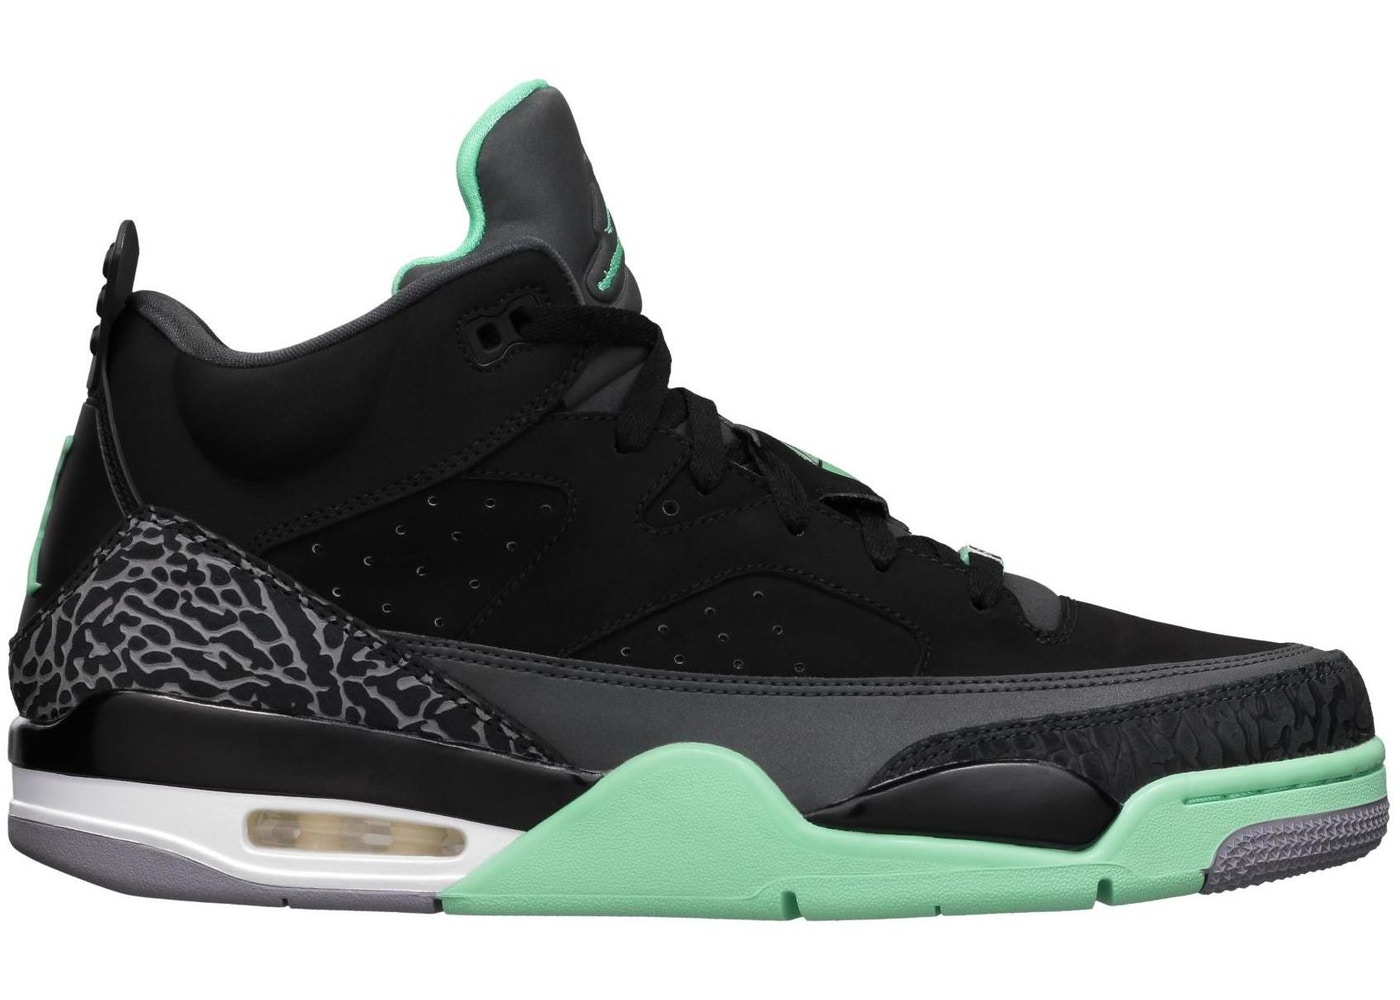 33720b36ba03 Jordan Son of Mars Low Green Glow - 580603-030